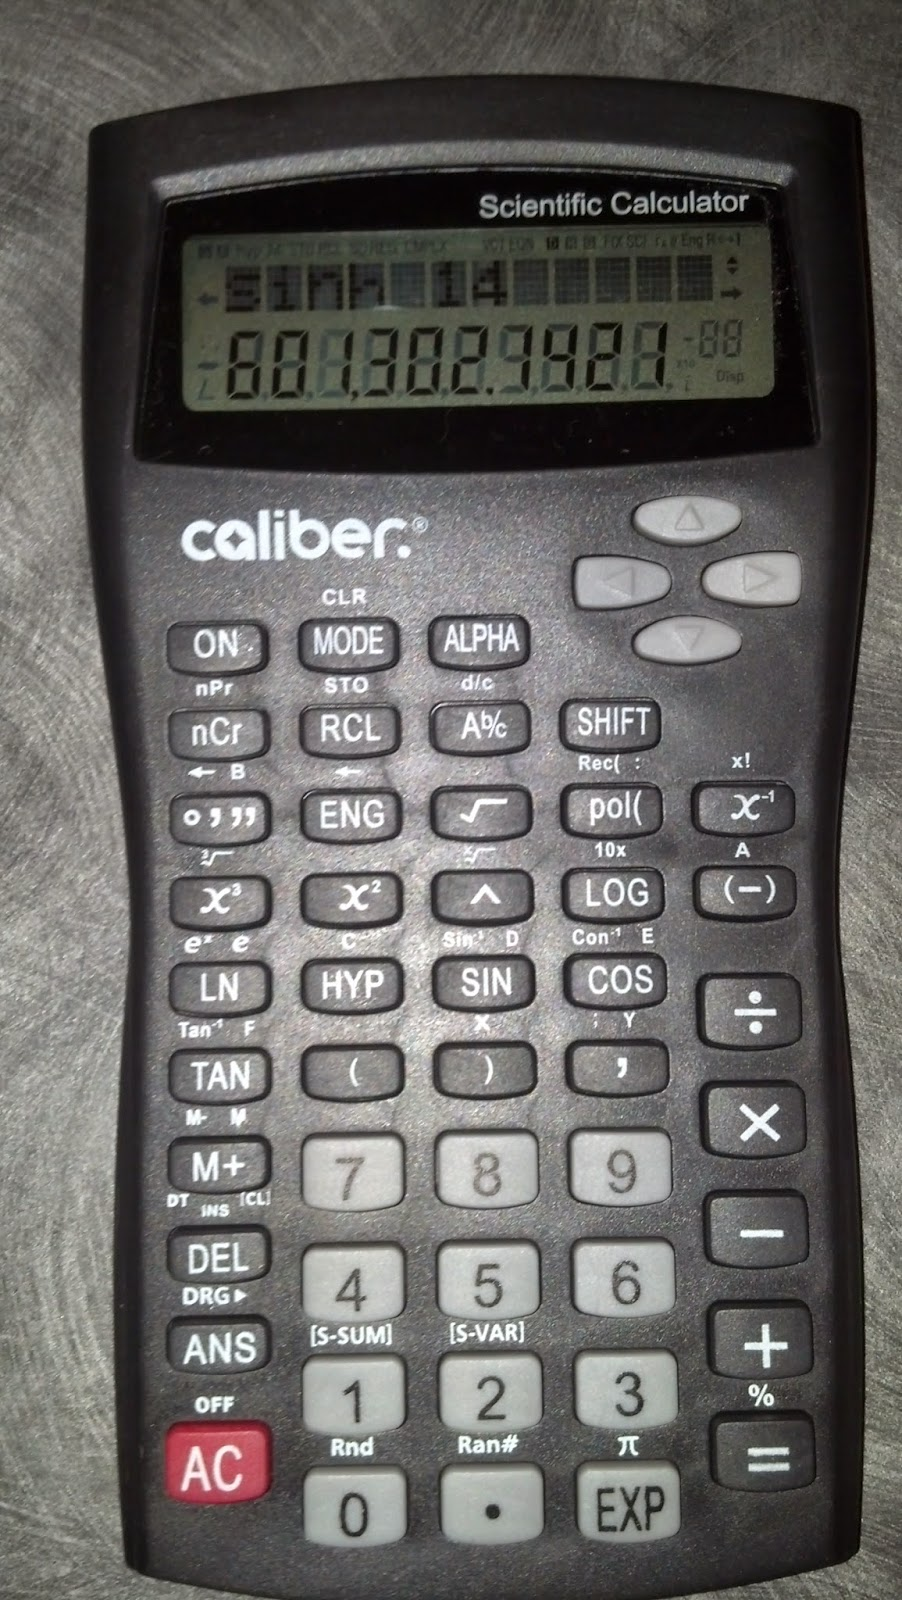 Eddie's Math and Calculator Blog: Caliber Scientific